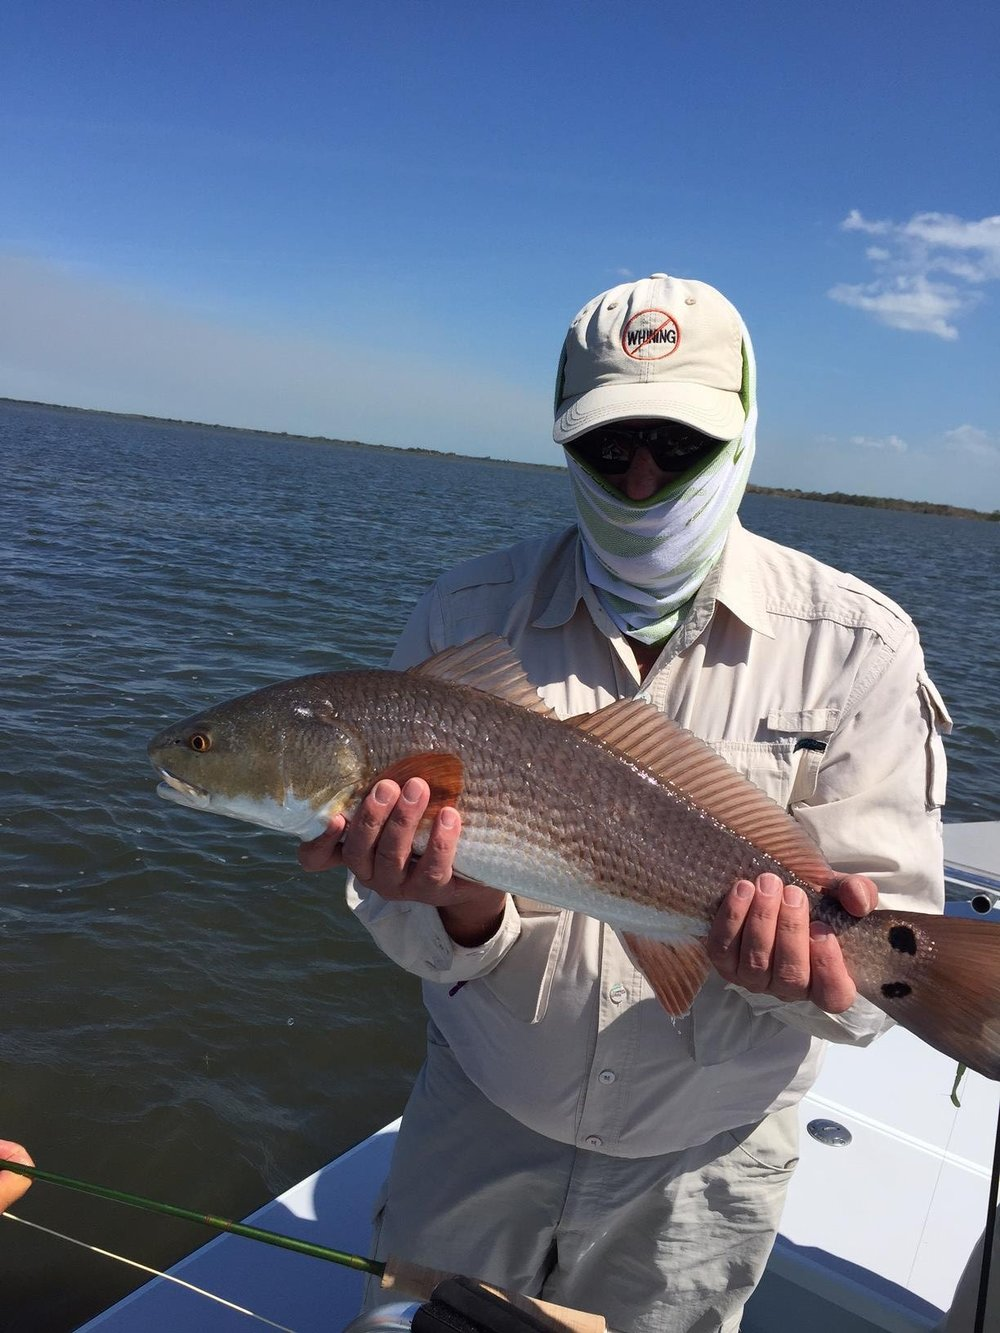 Bruce Salzburg with a redfish in Mosquito Lagoon near Titusville, Florida. Photo by Max Salzburg of Sonja K Photography.